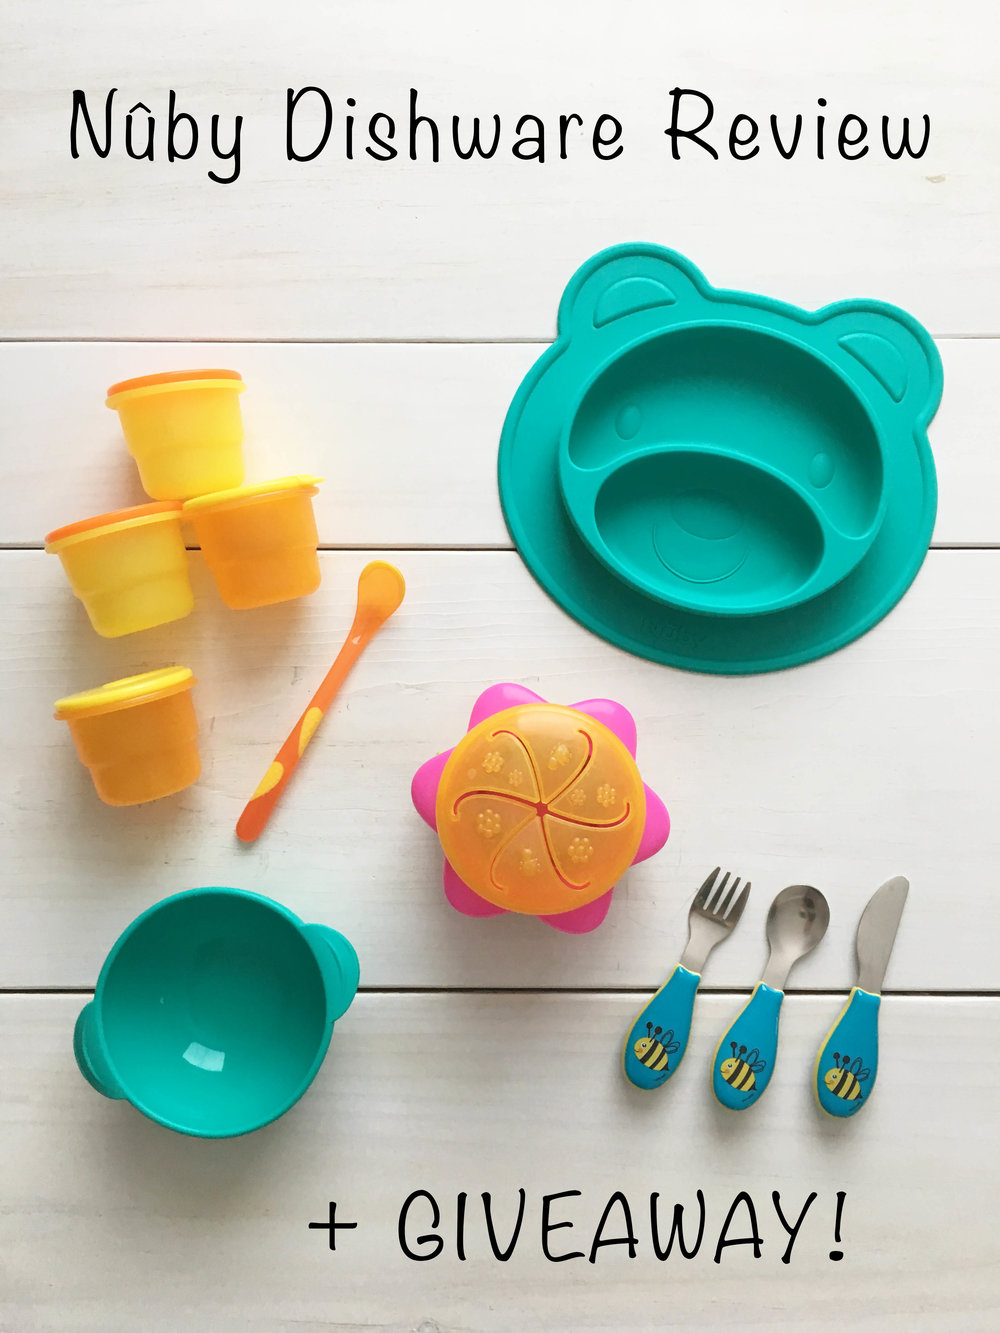 Nuby Dishware Review + GIVEAWAY!